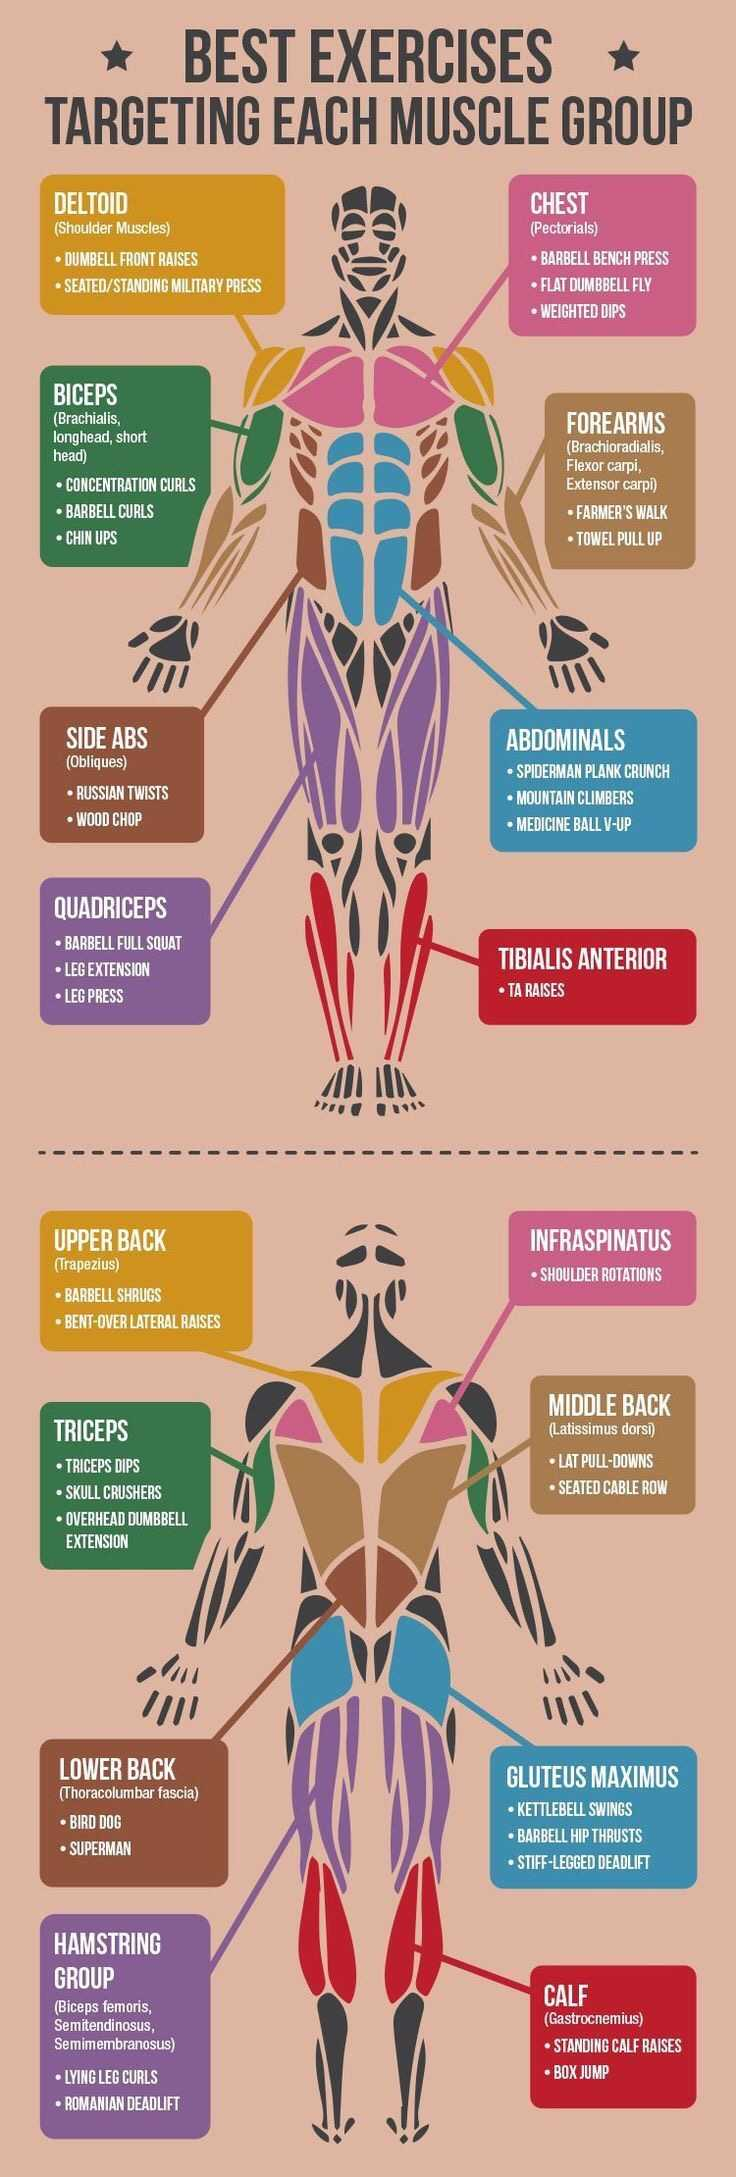 Best Exercises For Targeting Each Muscle Group